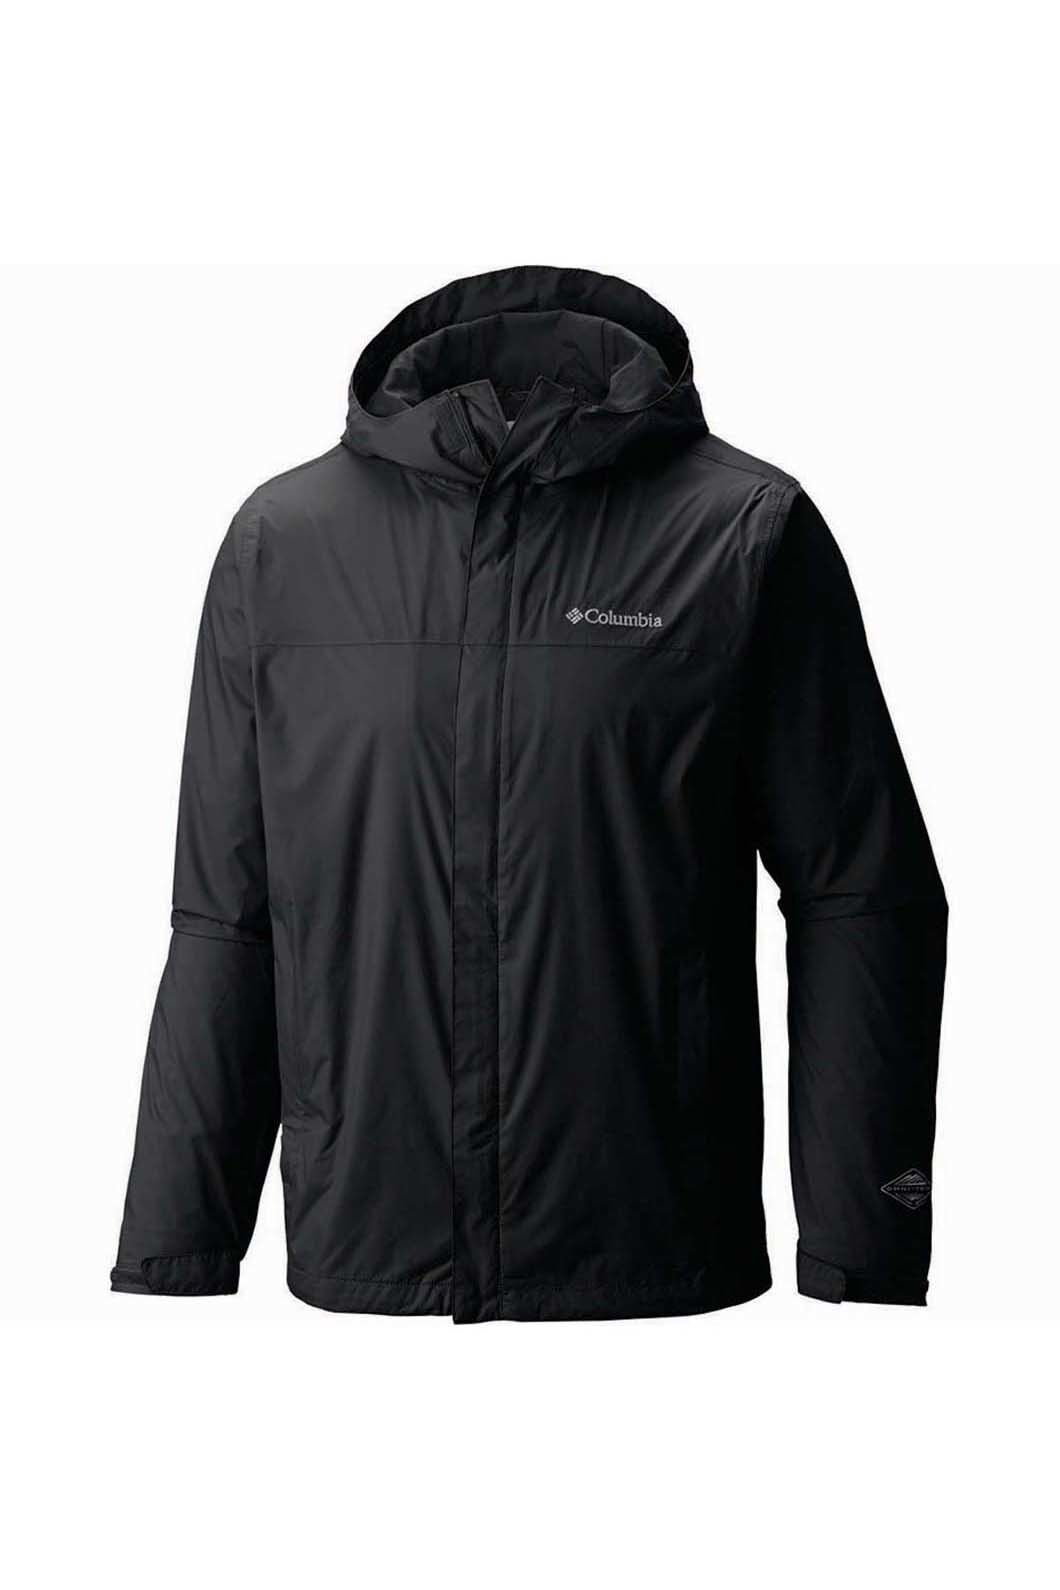 Columbia Men's Watertight II Jacket, Black, hi-res